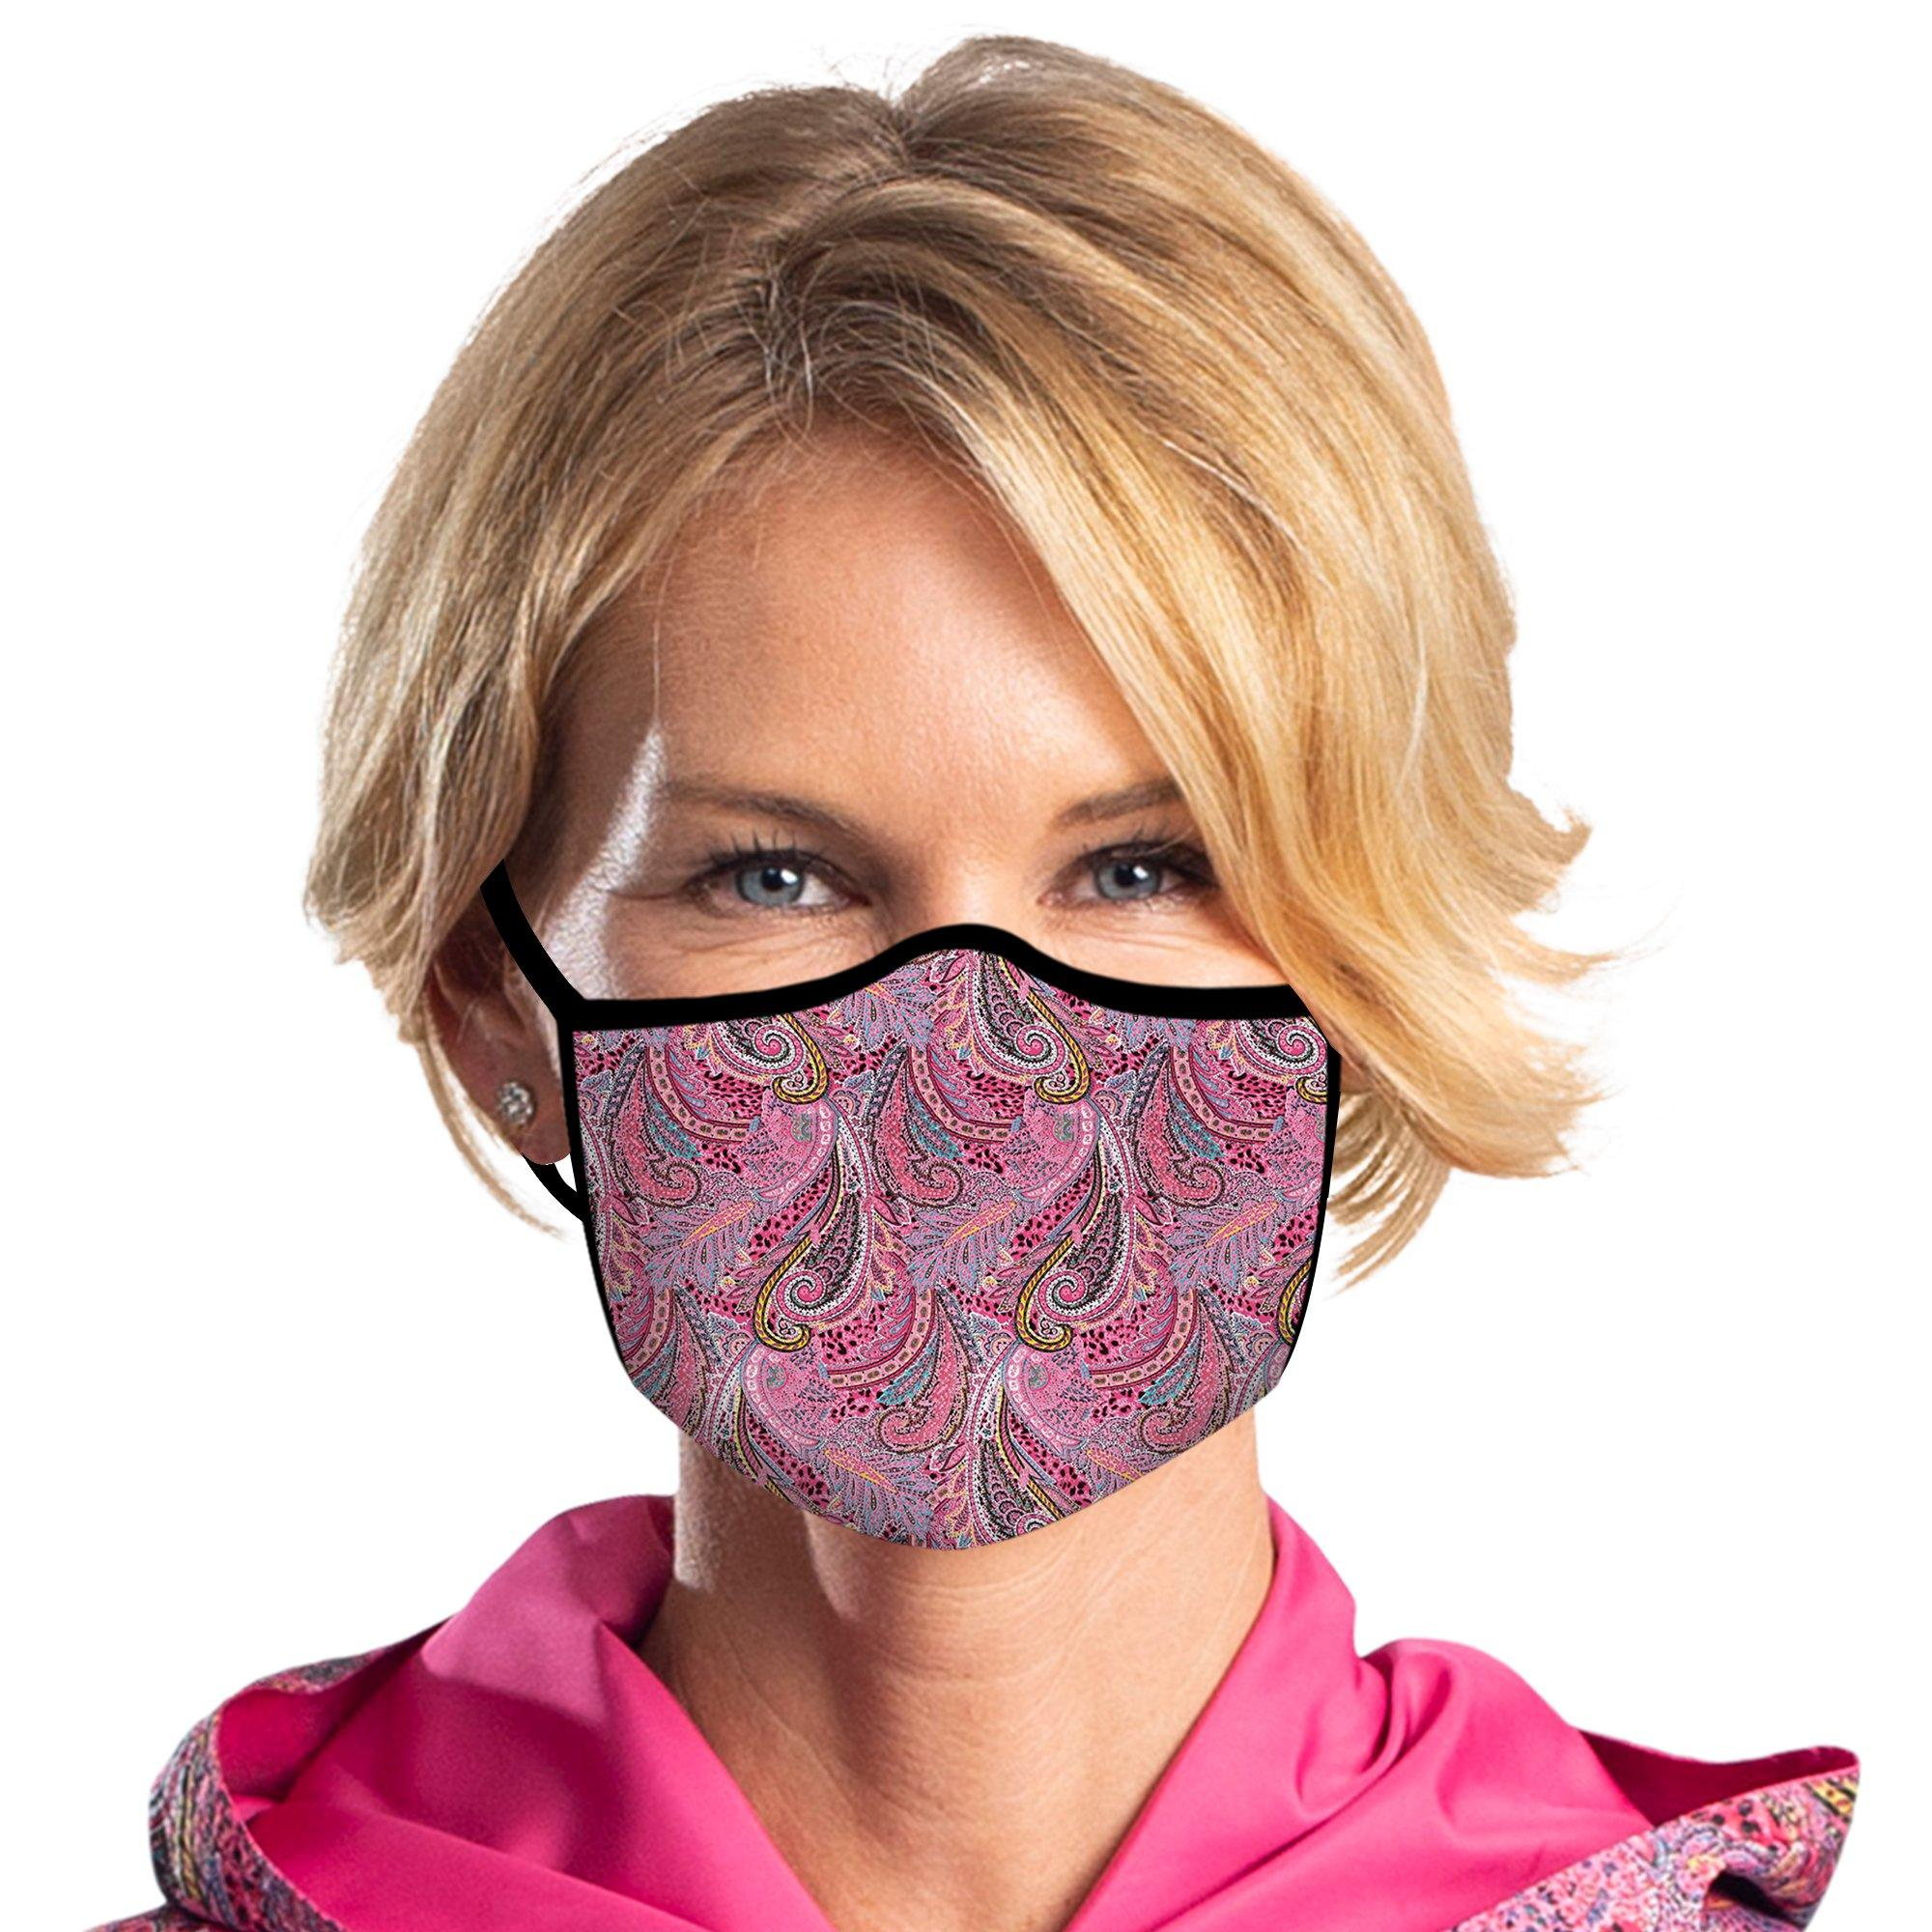 Women wearing a RainCaper Pink Paisley Reusable Fabric Face Mask.